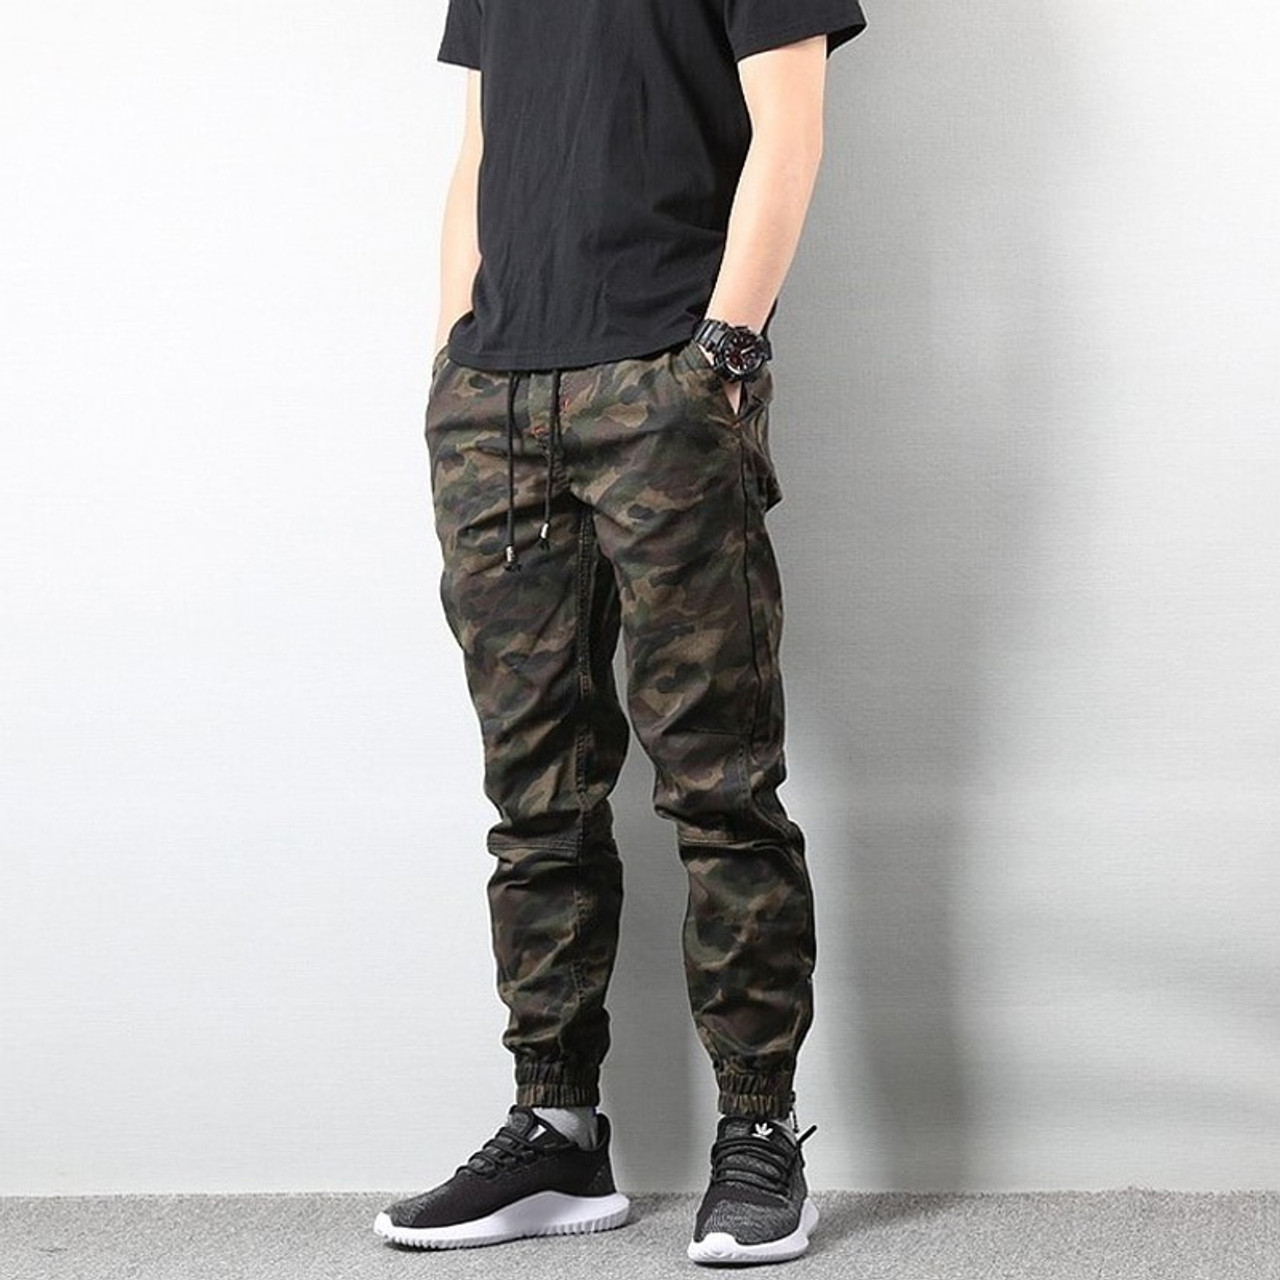 American Street Style Fashion Men's Jeans Jogger Pants Camouflage ...